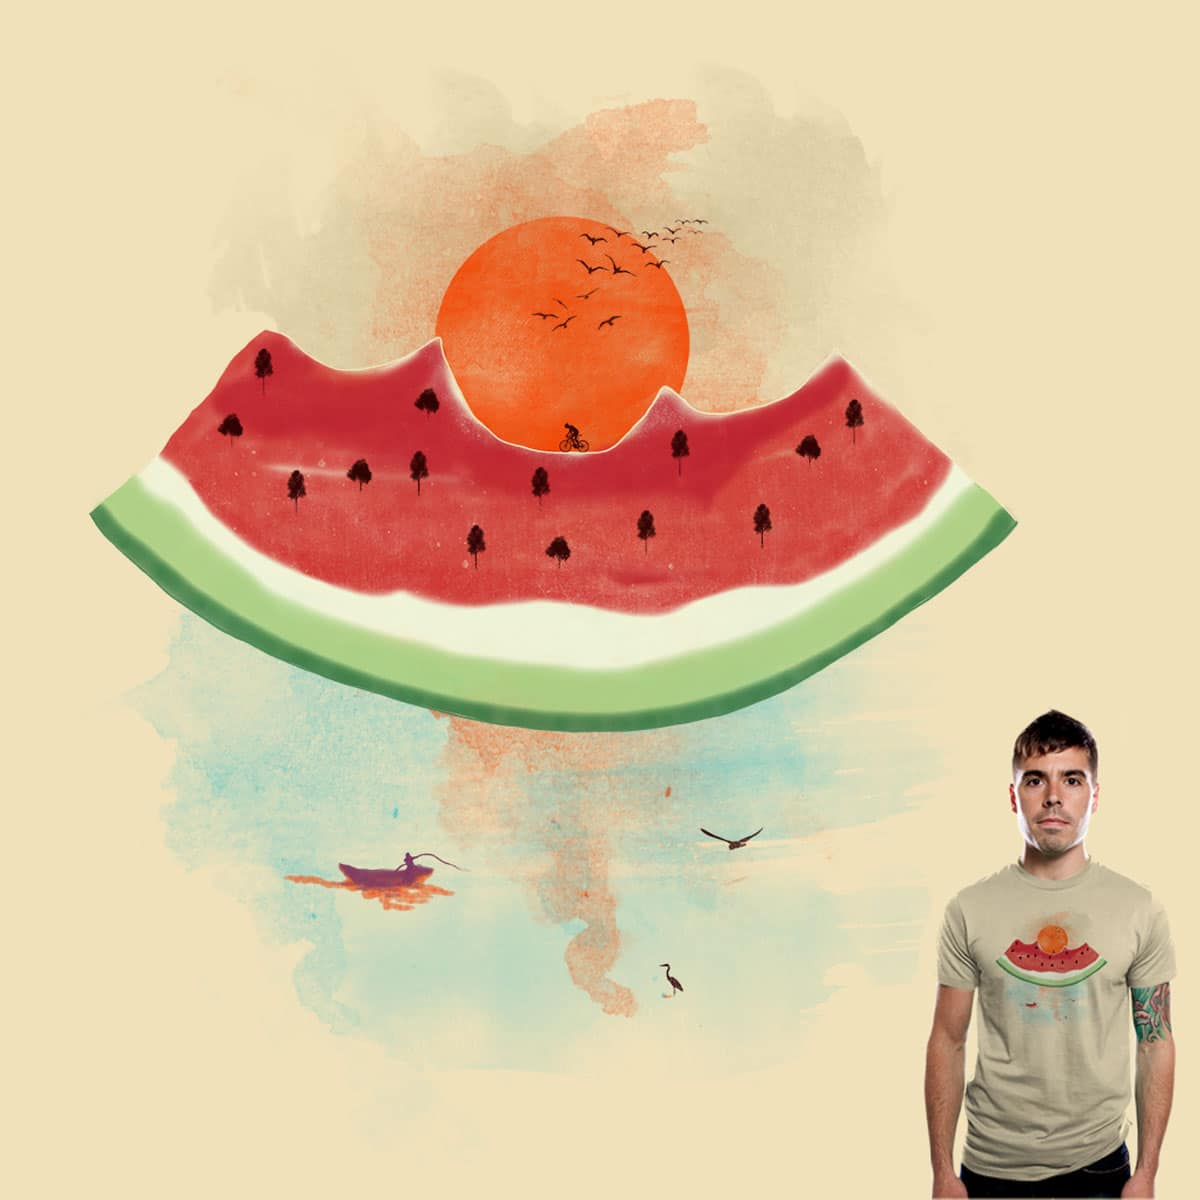 Summer delights by bandy on Threadless